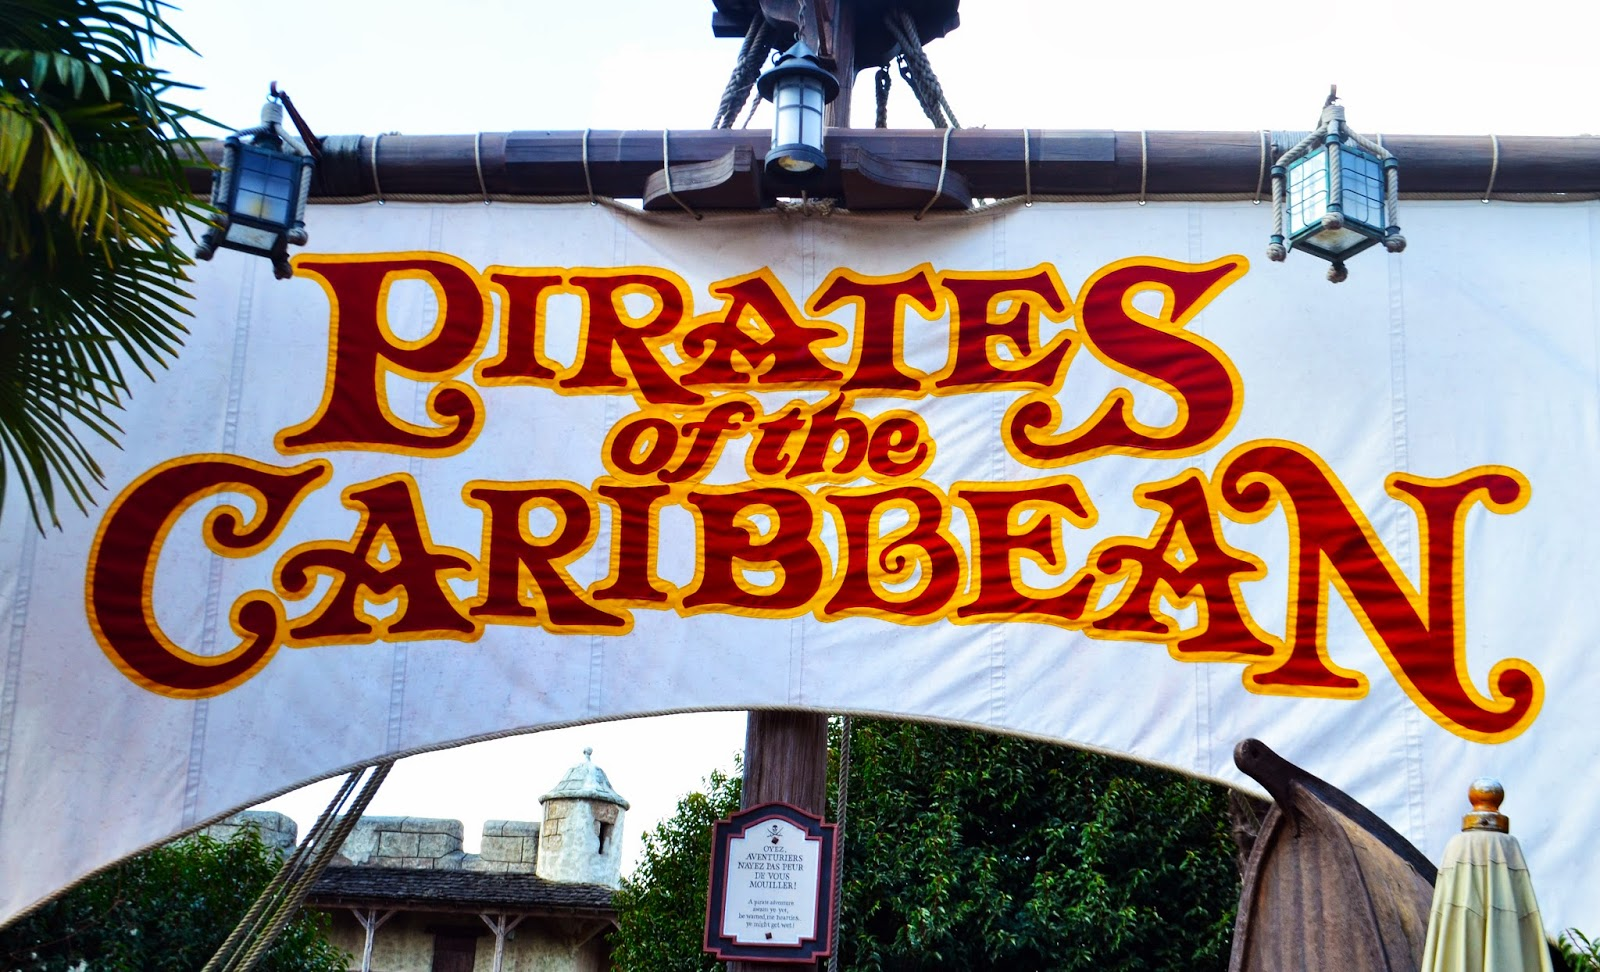 /the entrance sign to the Pirates of the Caribbean ride. The sign os printed on a ships sail